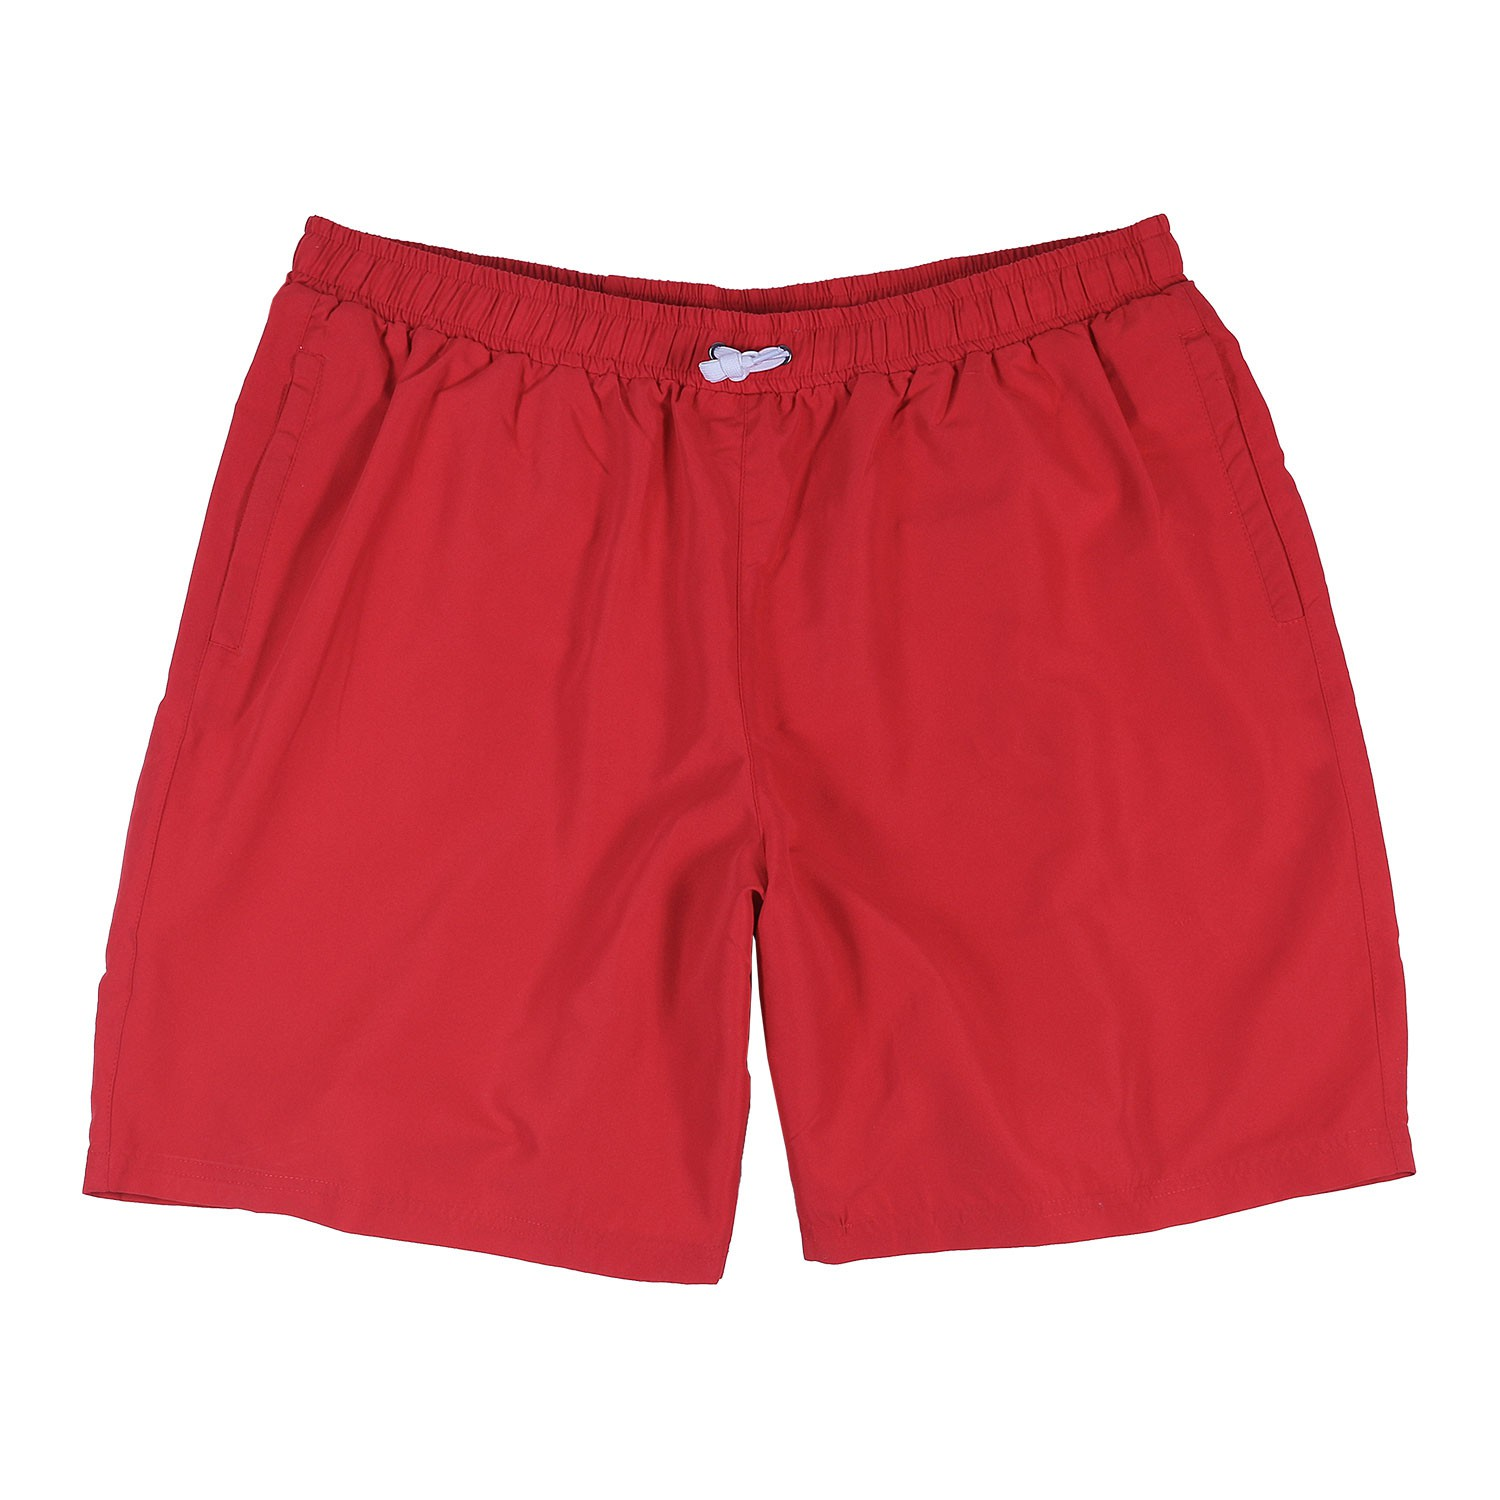 Detail Image to Swimming trunks in red up to oversize 10XL- Abraxas